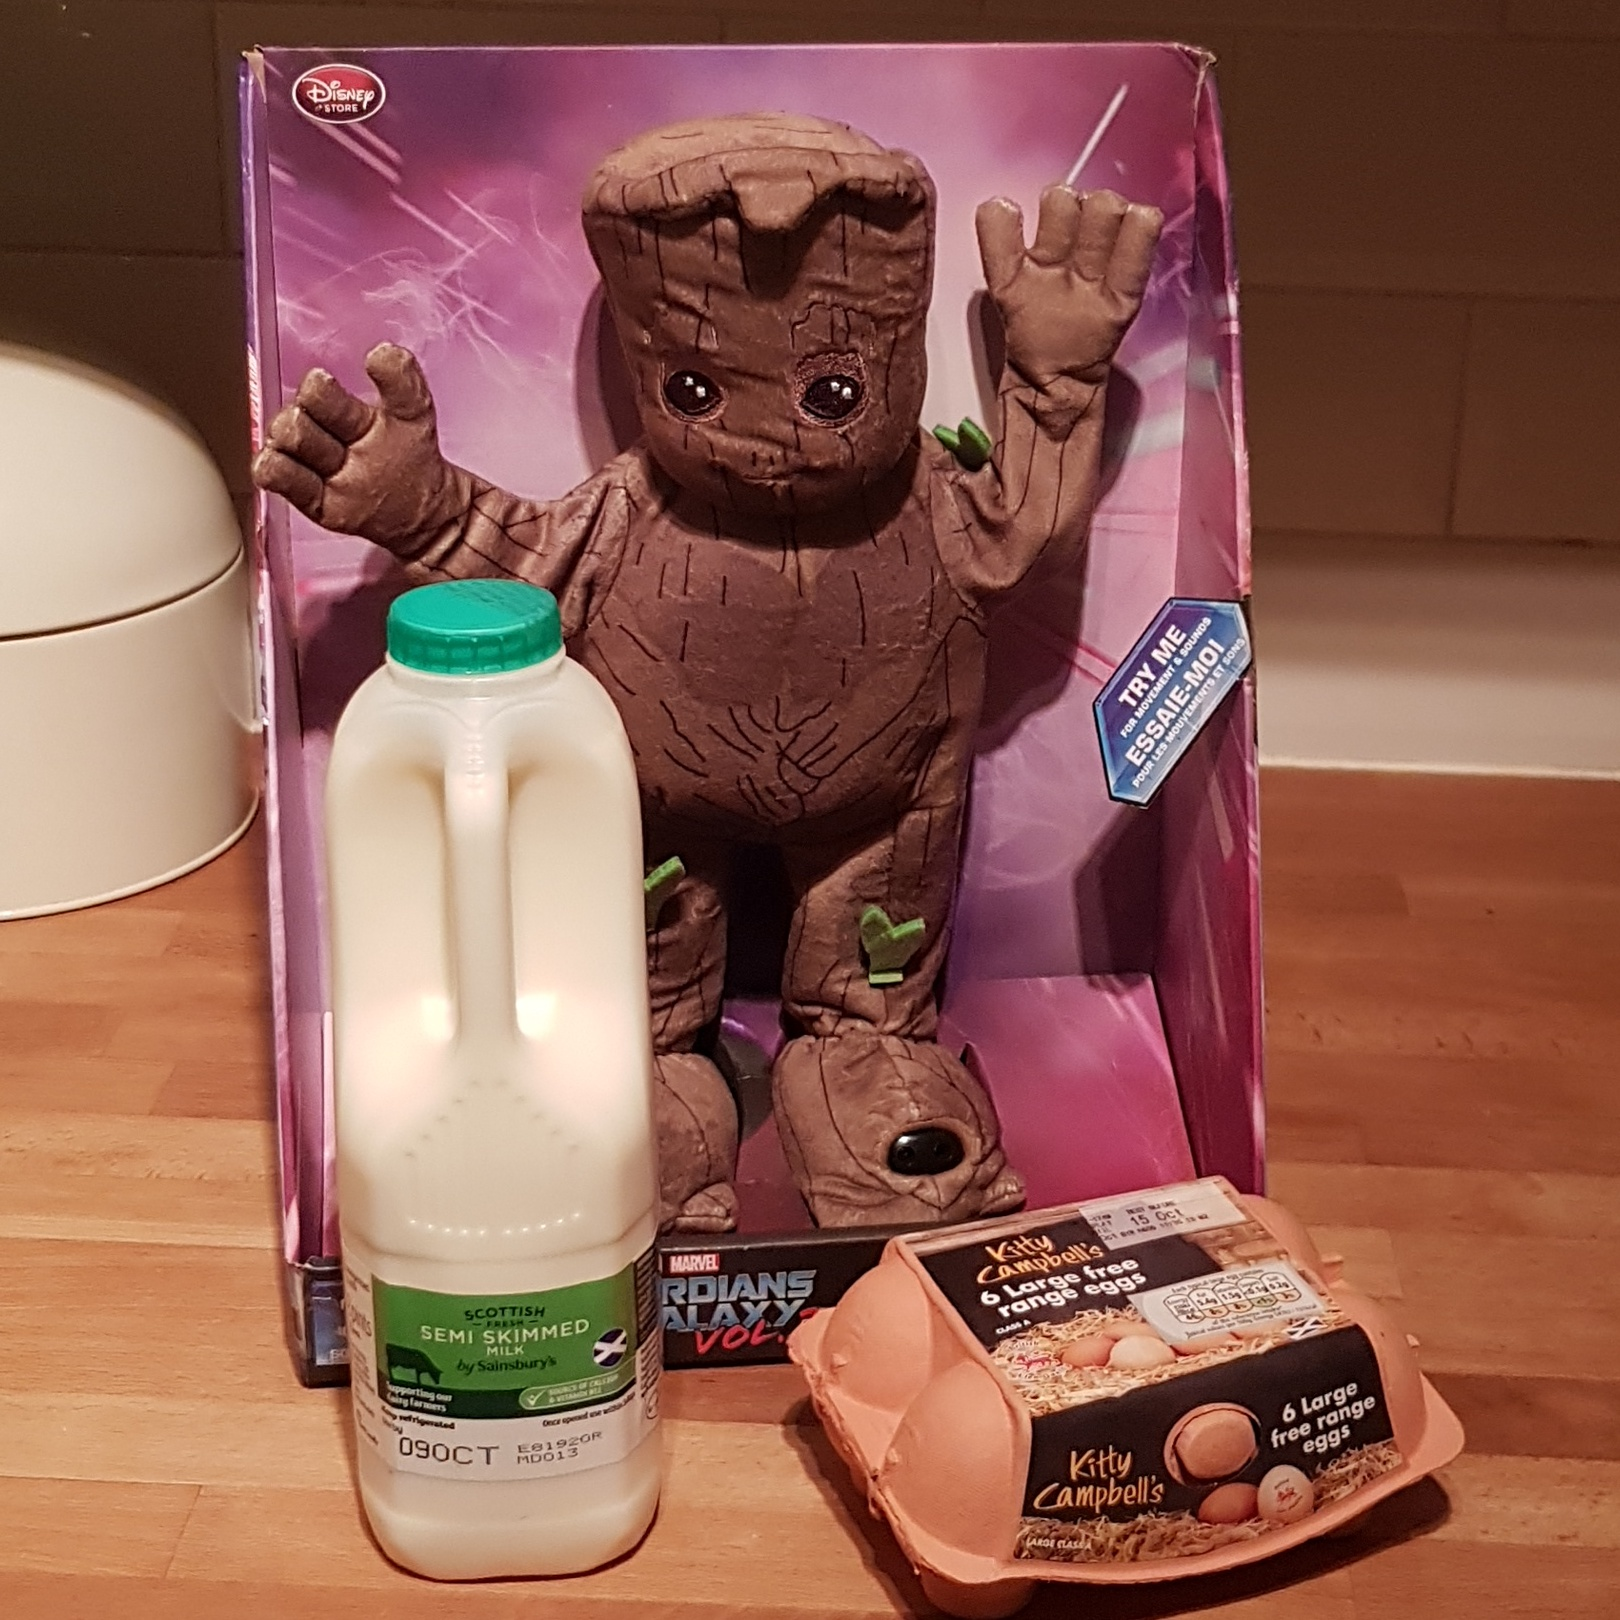 Milk, eggs and a dancing Groot. Not your standard get well gift but I LOVE it!